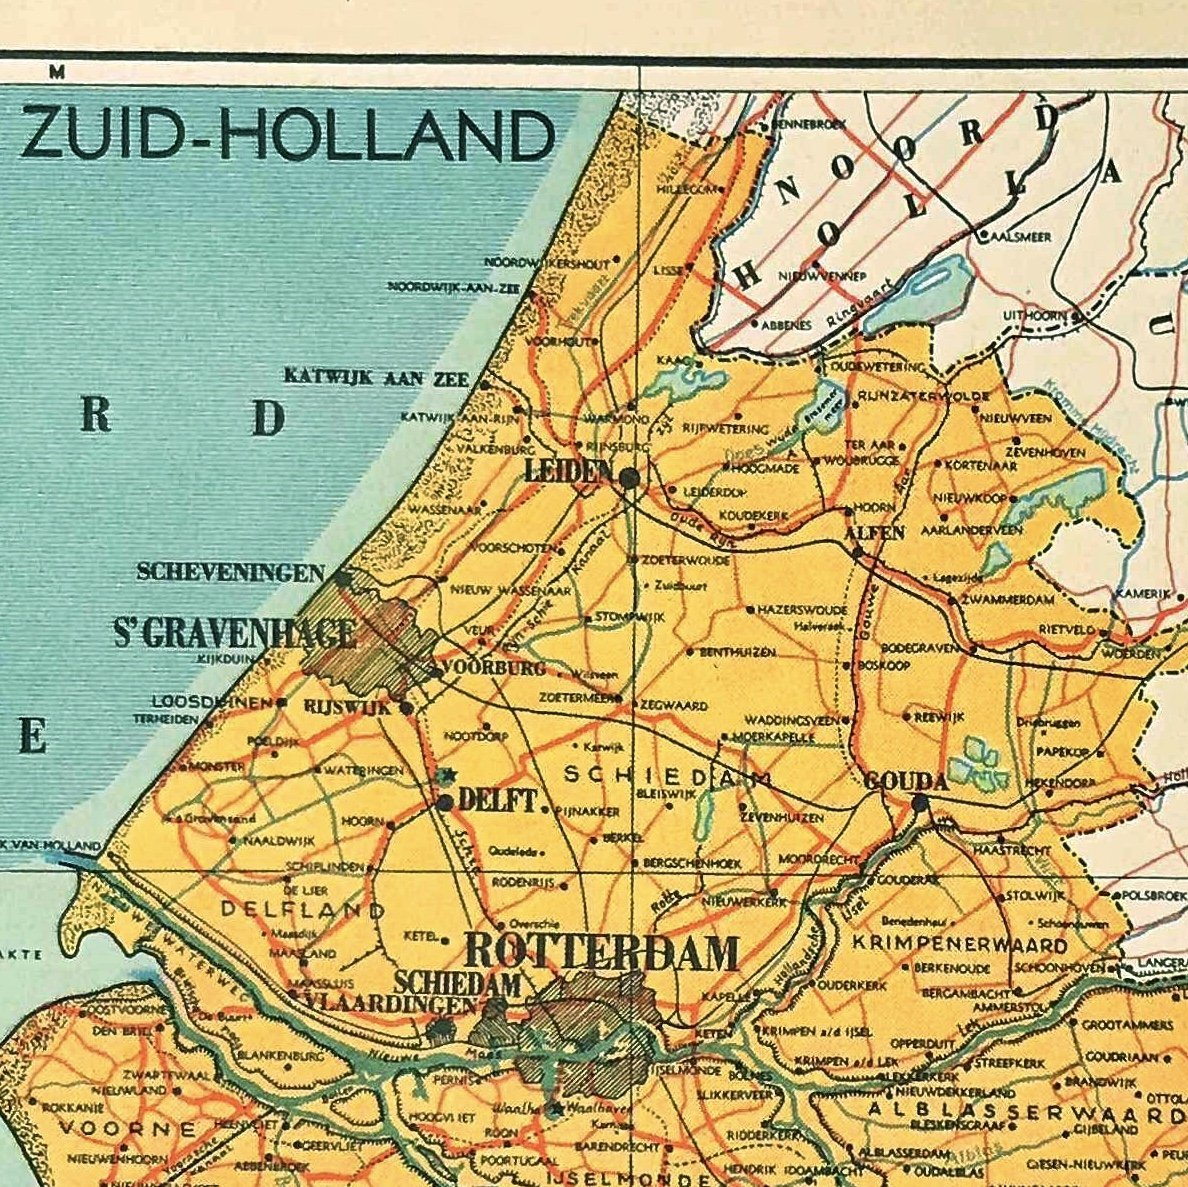 Provincie Zuid Holland - 1939 - World of Maps & Travel